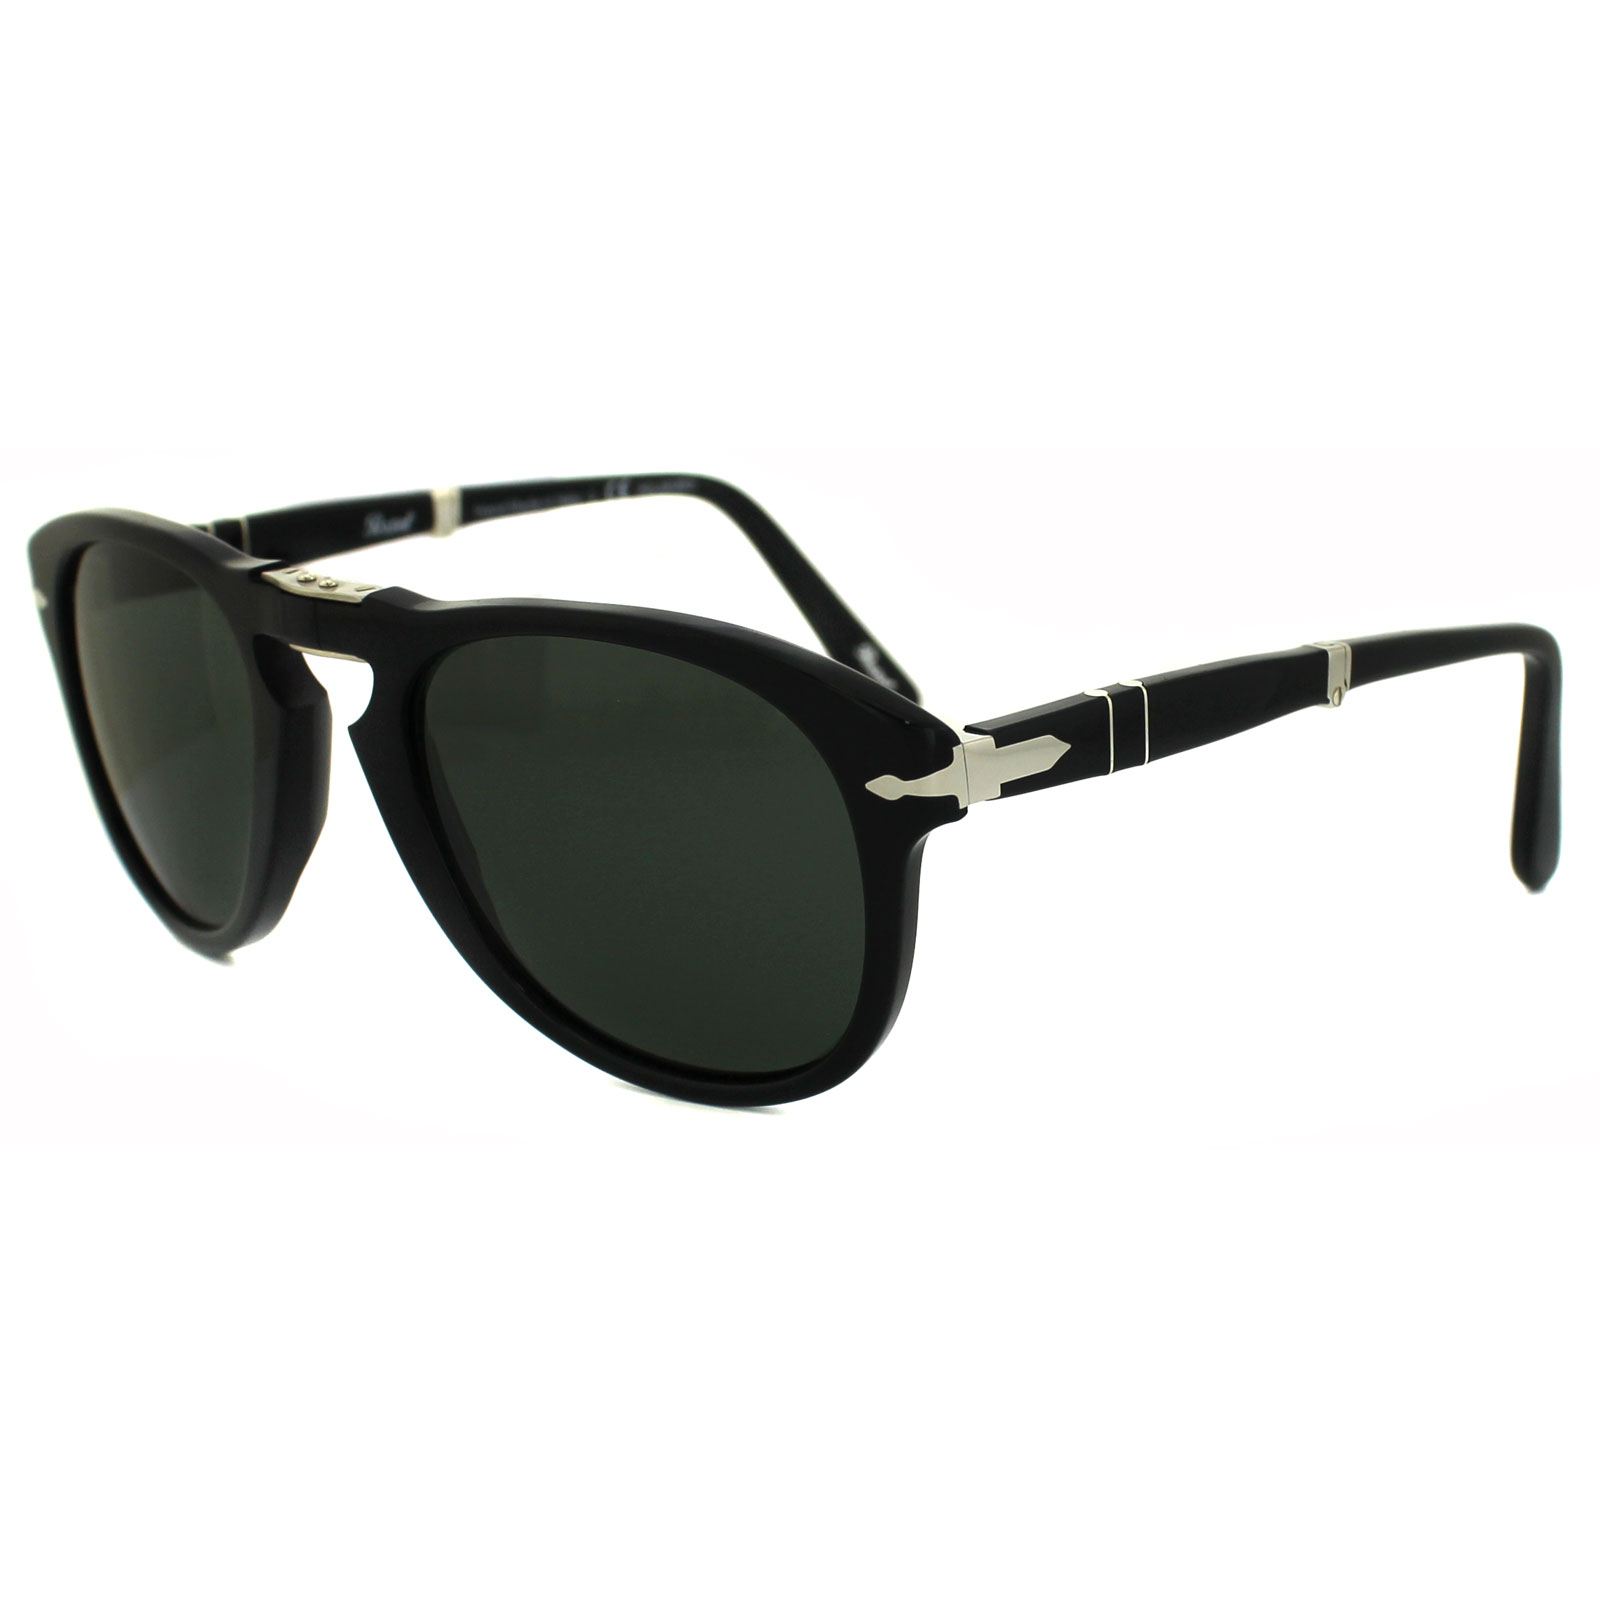 8b144b8c999a5 Sentinel Persol Sunglasses 0714 95 58 Black Green Polarized Folding Steve  McQueen 52mm